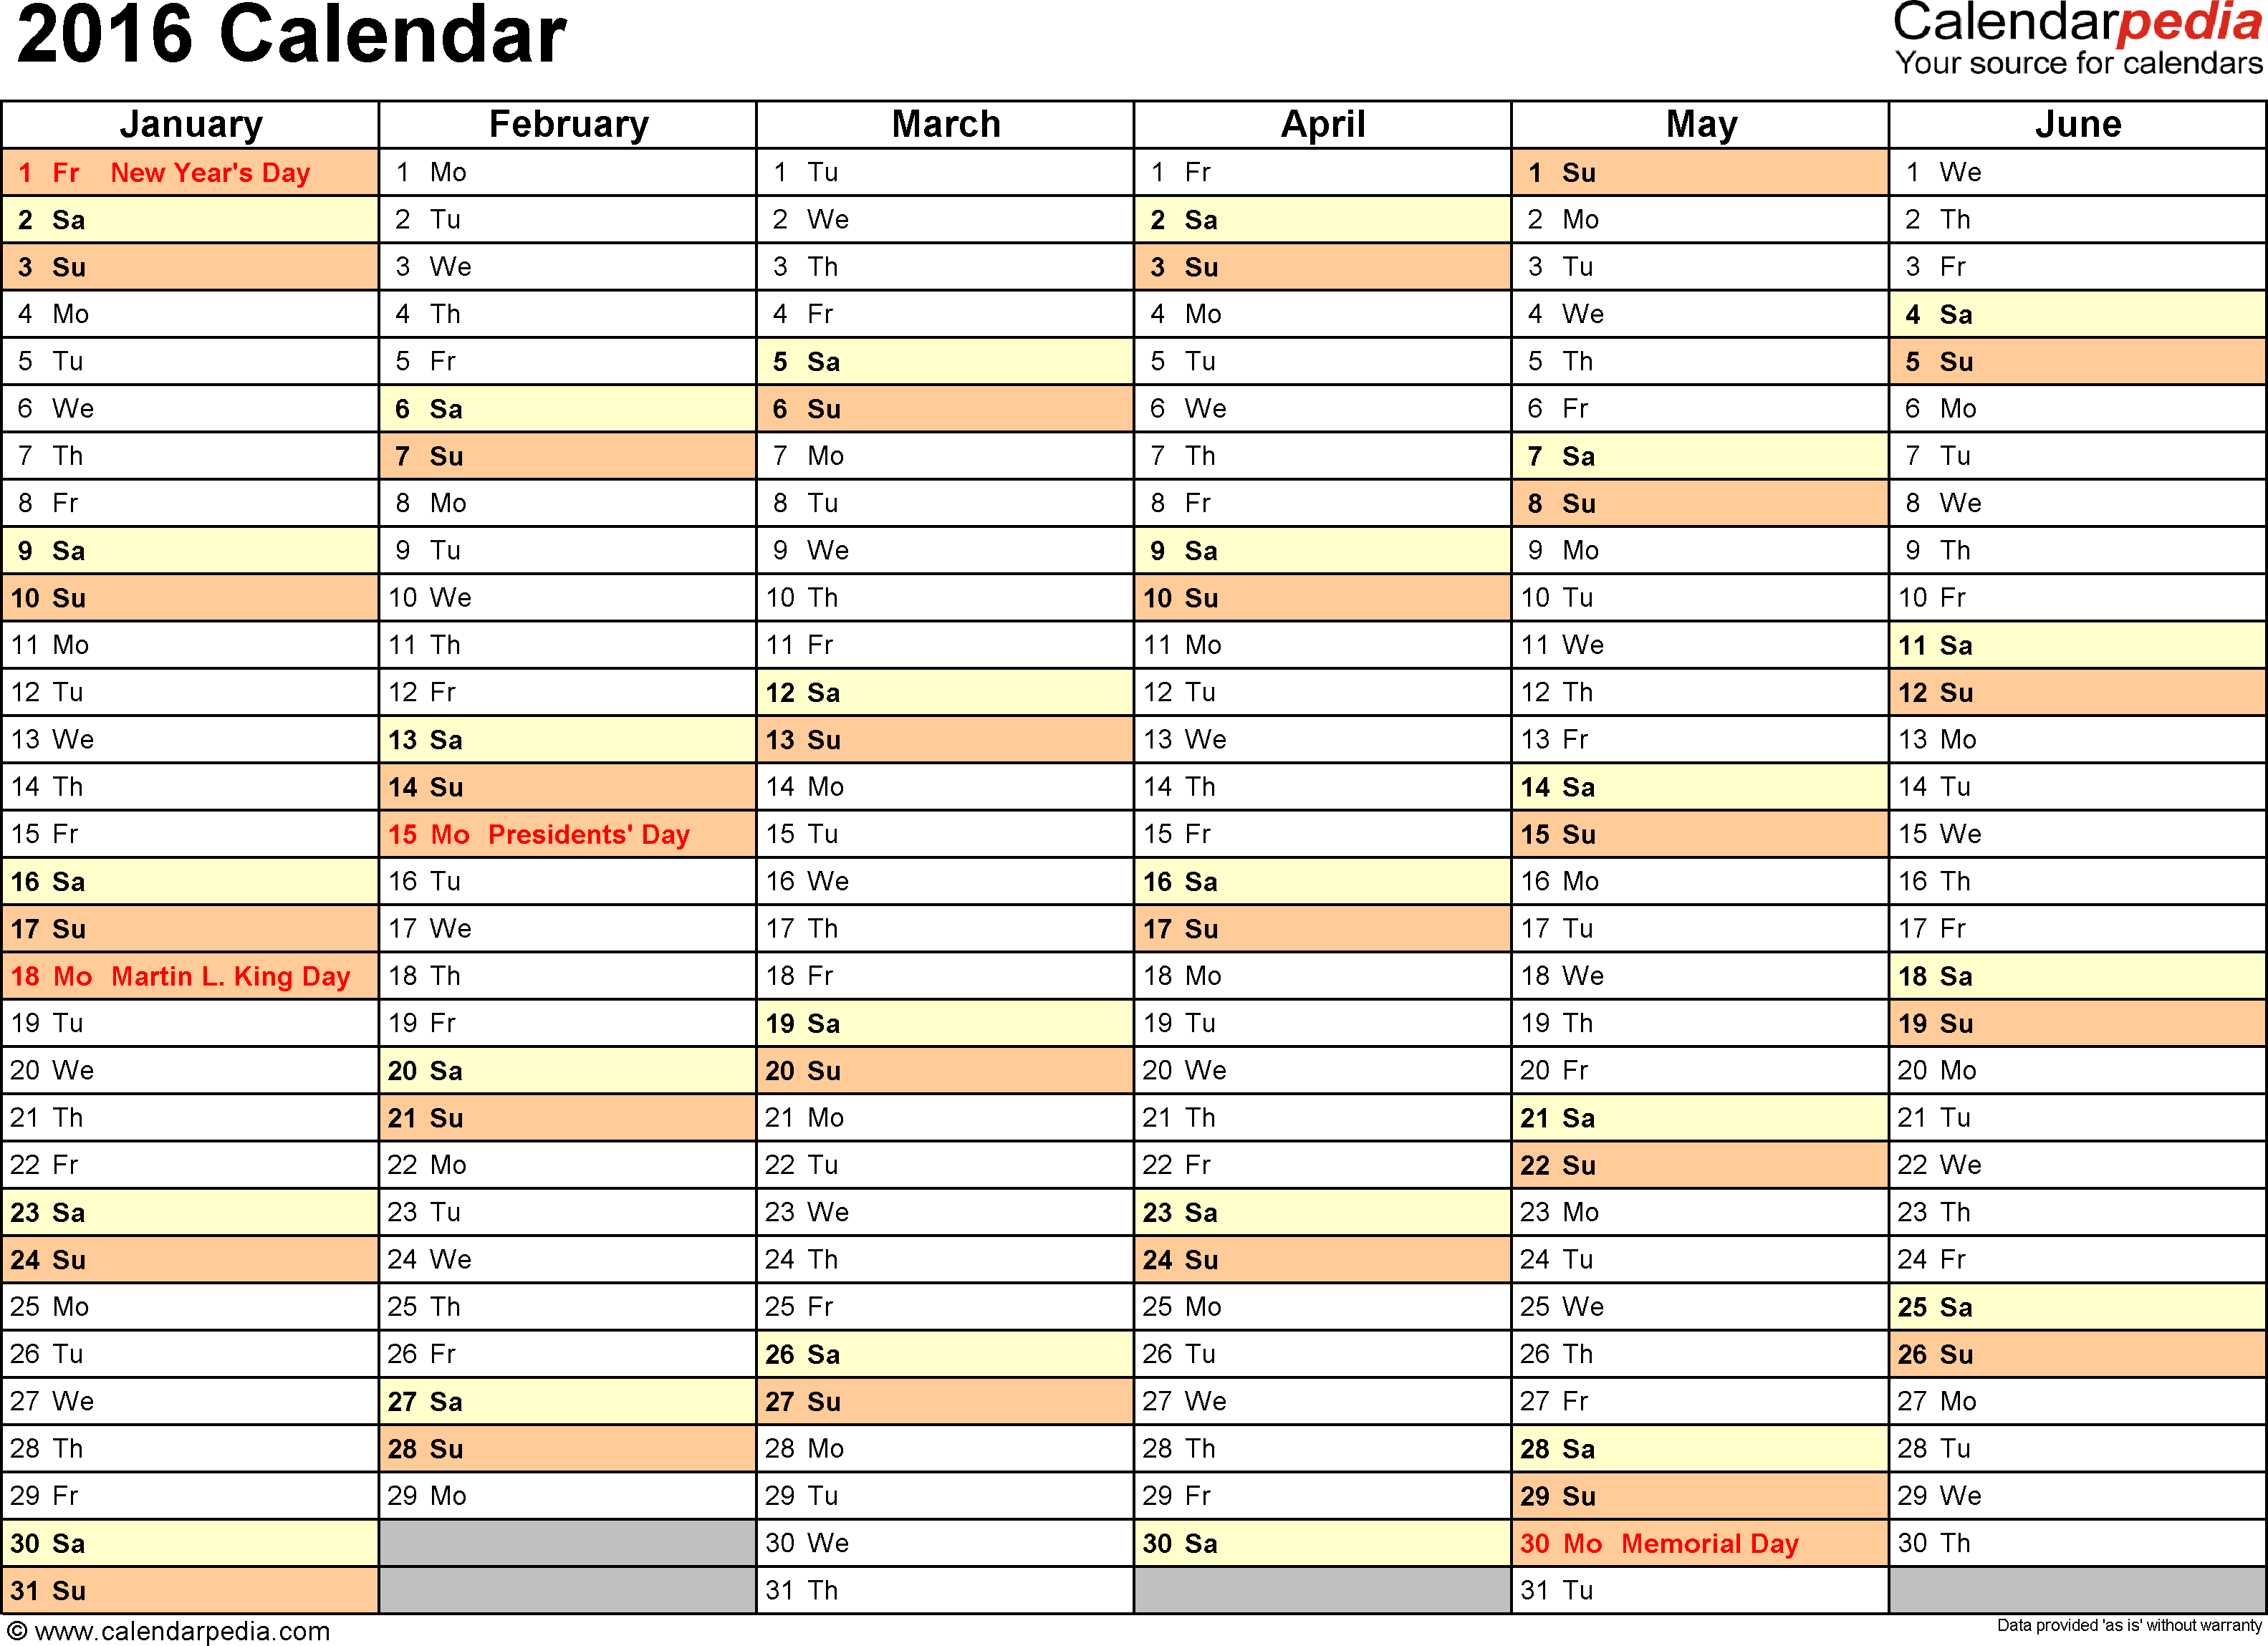 Ediblewildsus  Inspiring  Calendar  Download  Free Printable Excel Templates Xls With Lovable Template   Calendar For Excel Months Horizontally  Pages Landscape Orientation With Astonishing Excel Autosave File Location Also Excel Show Formula In Cell In Addition Calculate Correlation In Excel And Excel Conditional Formatting Color As Well As Remove Dropdown From Excel Additionally Excel International From Calendarpediacom With Ediblewildsus  Lovable  Calendar  Download  Free Printable Excel Templates Xls With Astonishing Template   Calendar For Excel Months Horizontally  Pages Landscape Orientation And Inspiring Excel Autosave File Location Also Excel Show Formula In Cell In Addition Calculate Correlation In Excel From Calendarpediacom